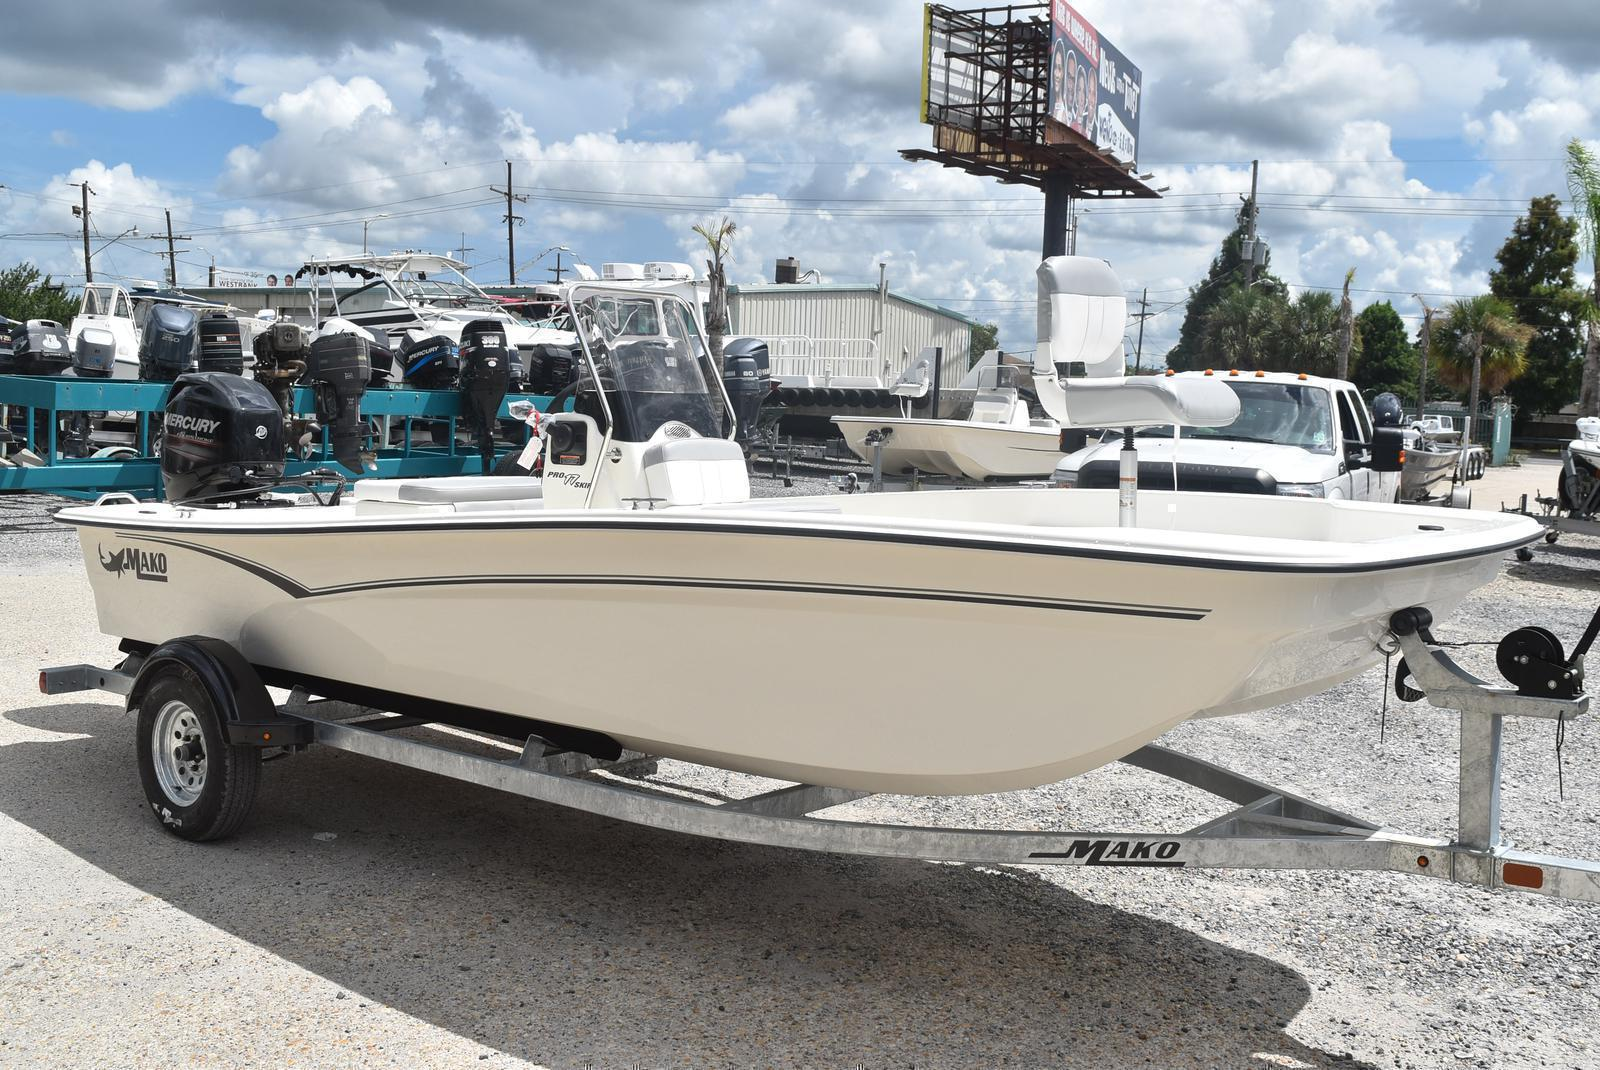 2020 Mako boat for sale, model of the boat is Pro Skiff 17, 75 ELPT & Image # 685 of 702